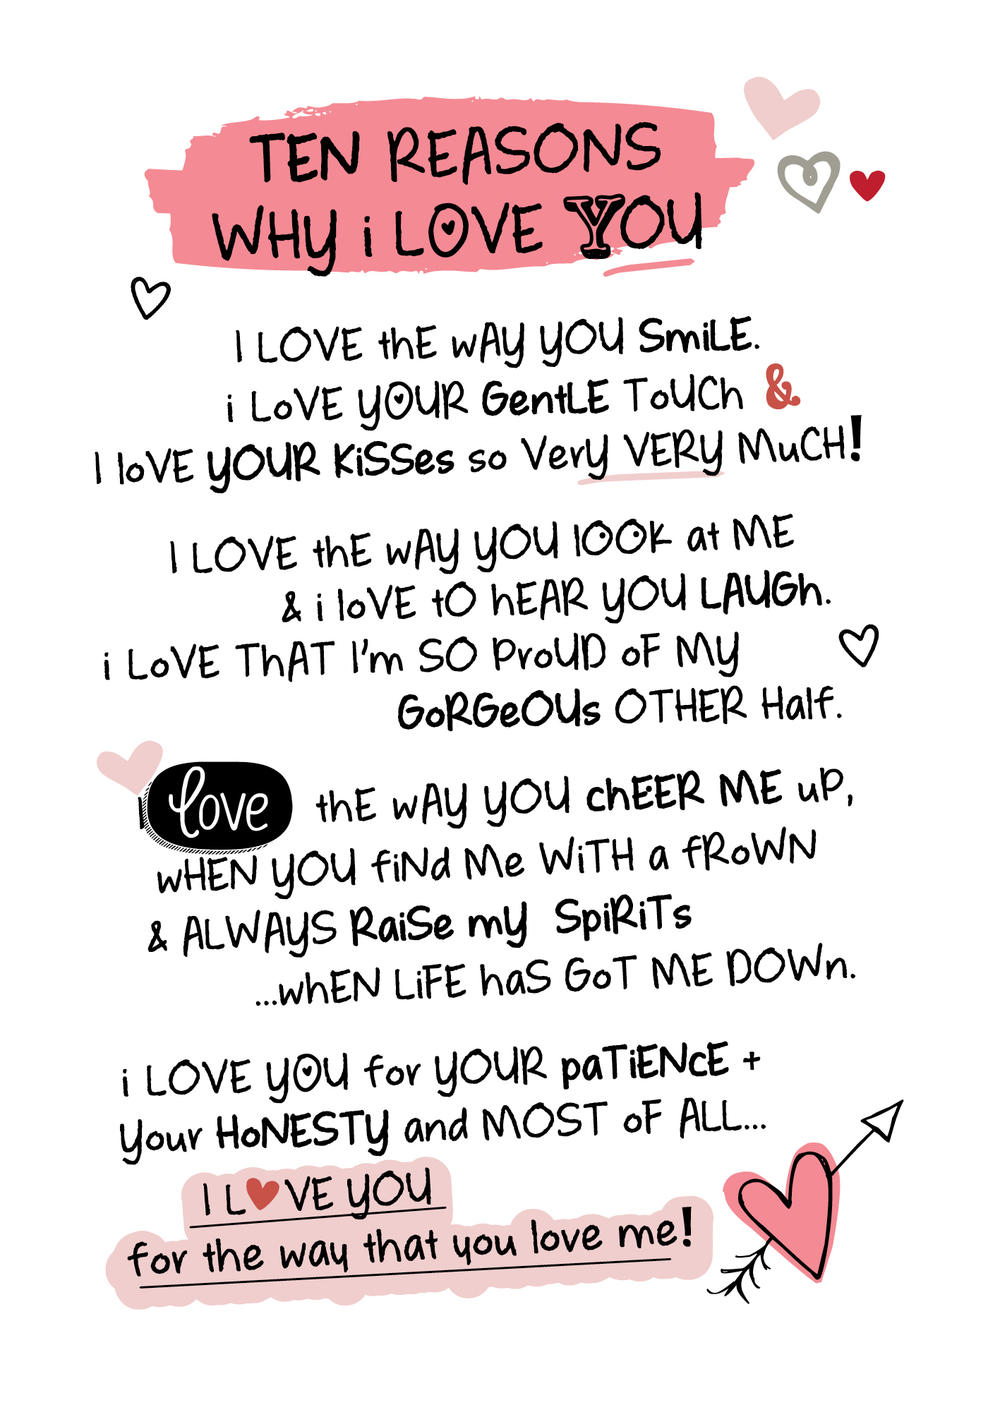 Ten reasons why i love you inspired words greeting card blank inside ten reasons why i love you inspired words greeting card blank inside thumbnail 1 kristyandbryce Image collections